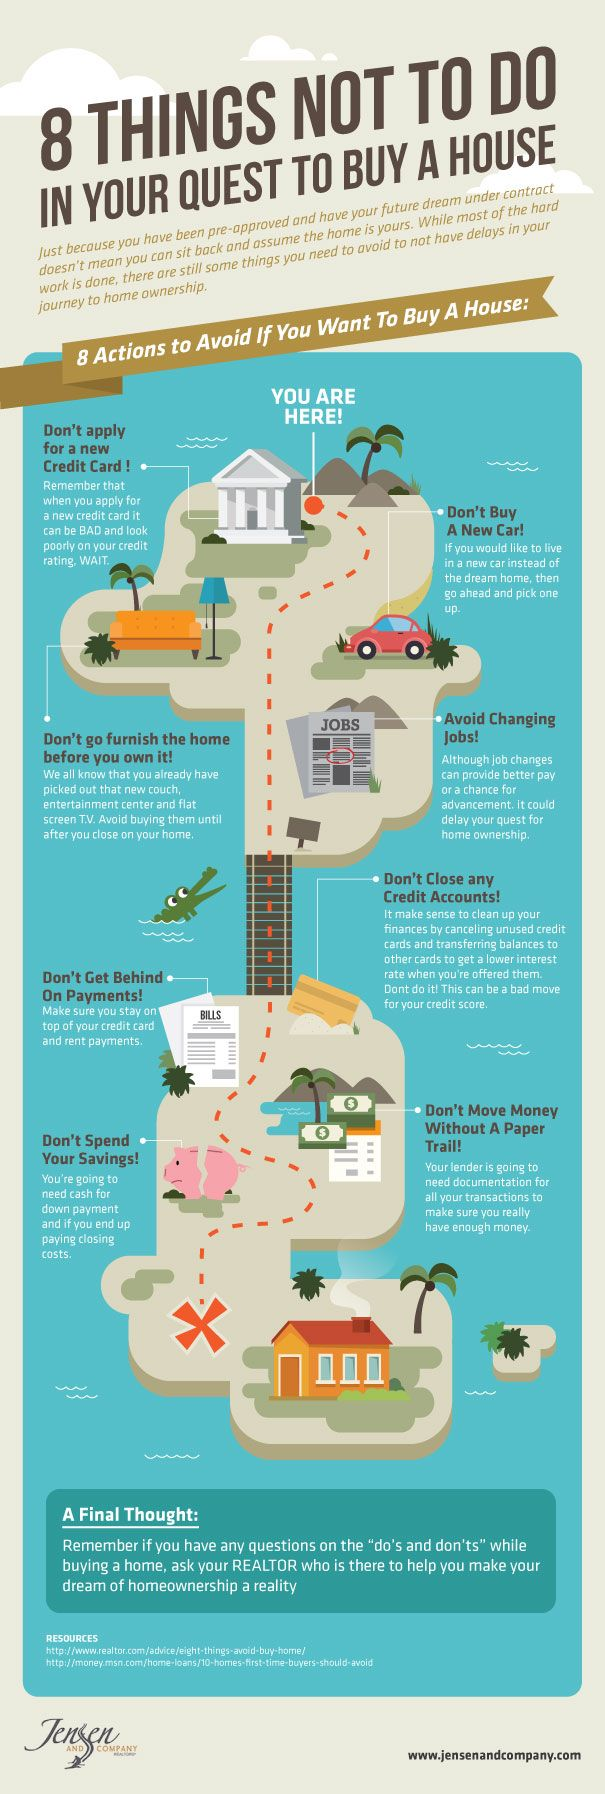 Great tips for first time home buyers. 8 things you should't do when preparing to buy a home.